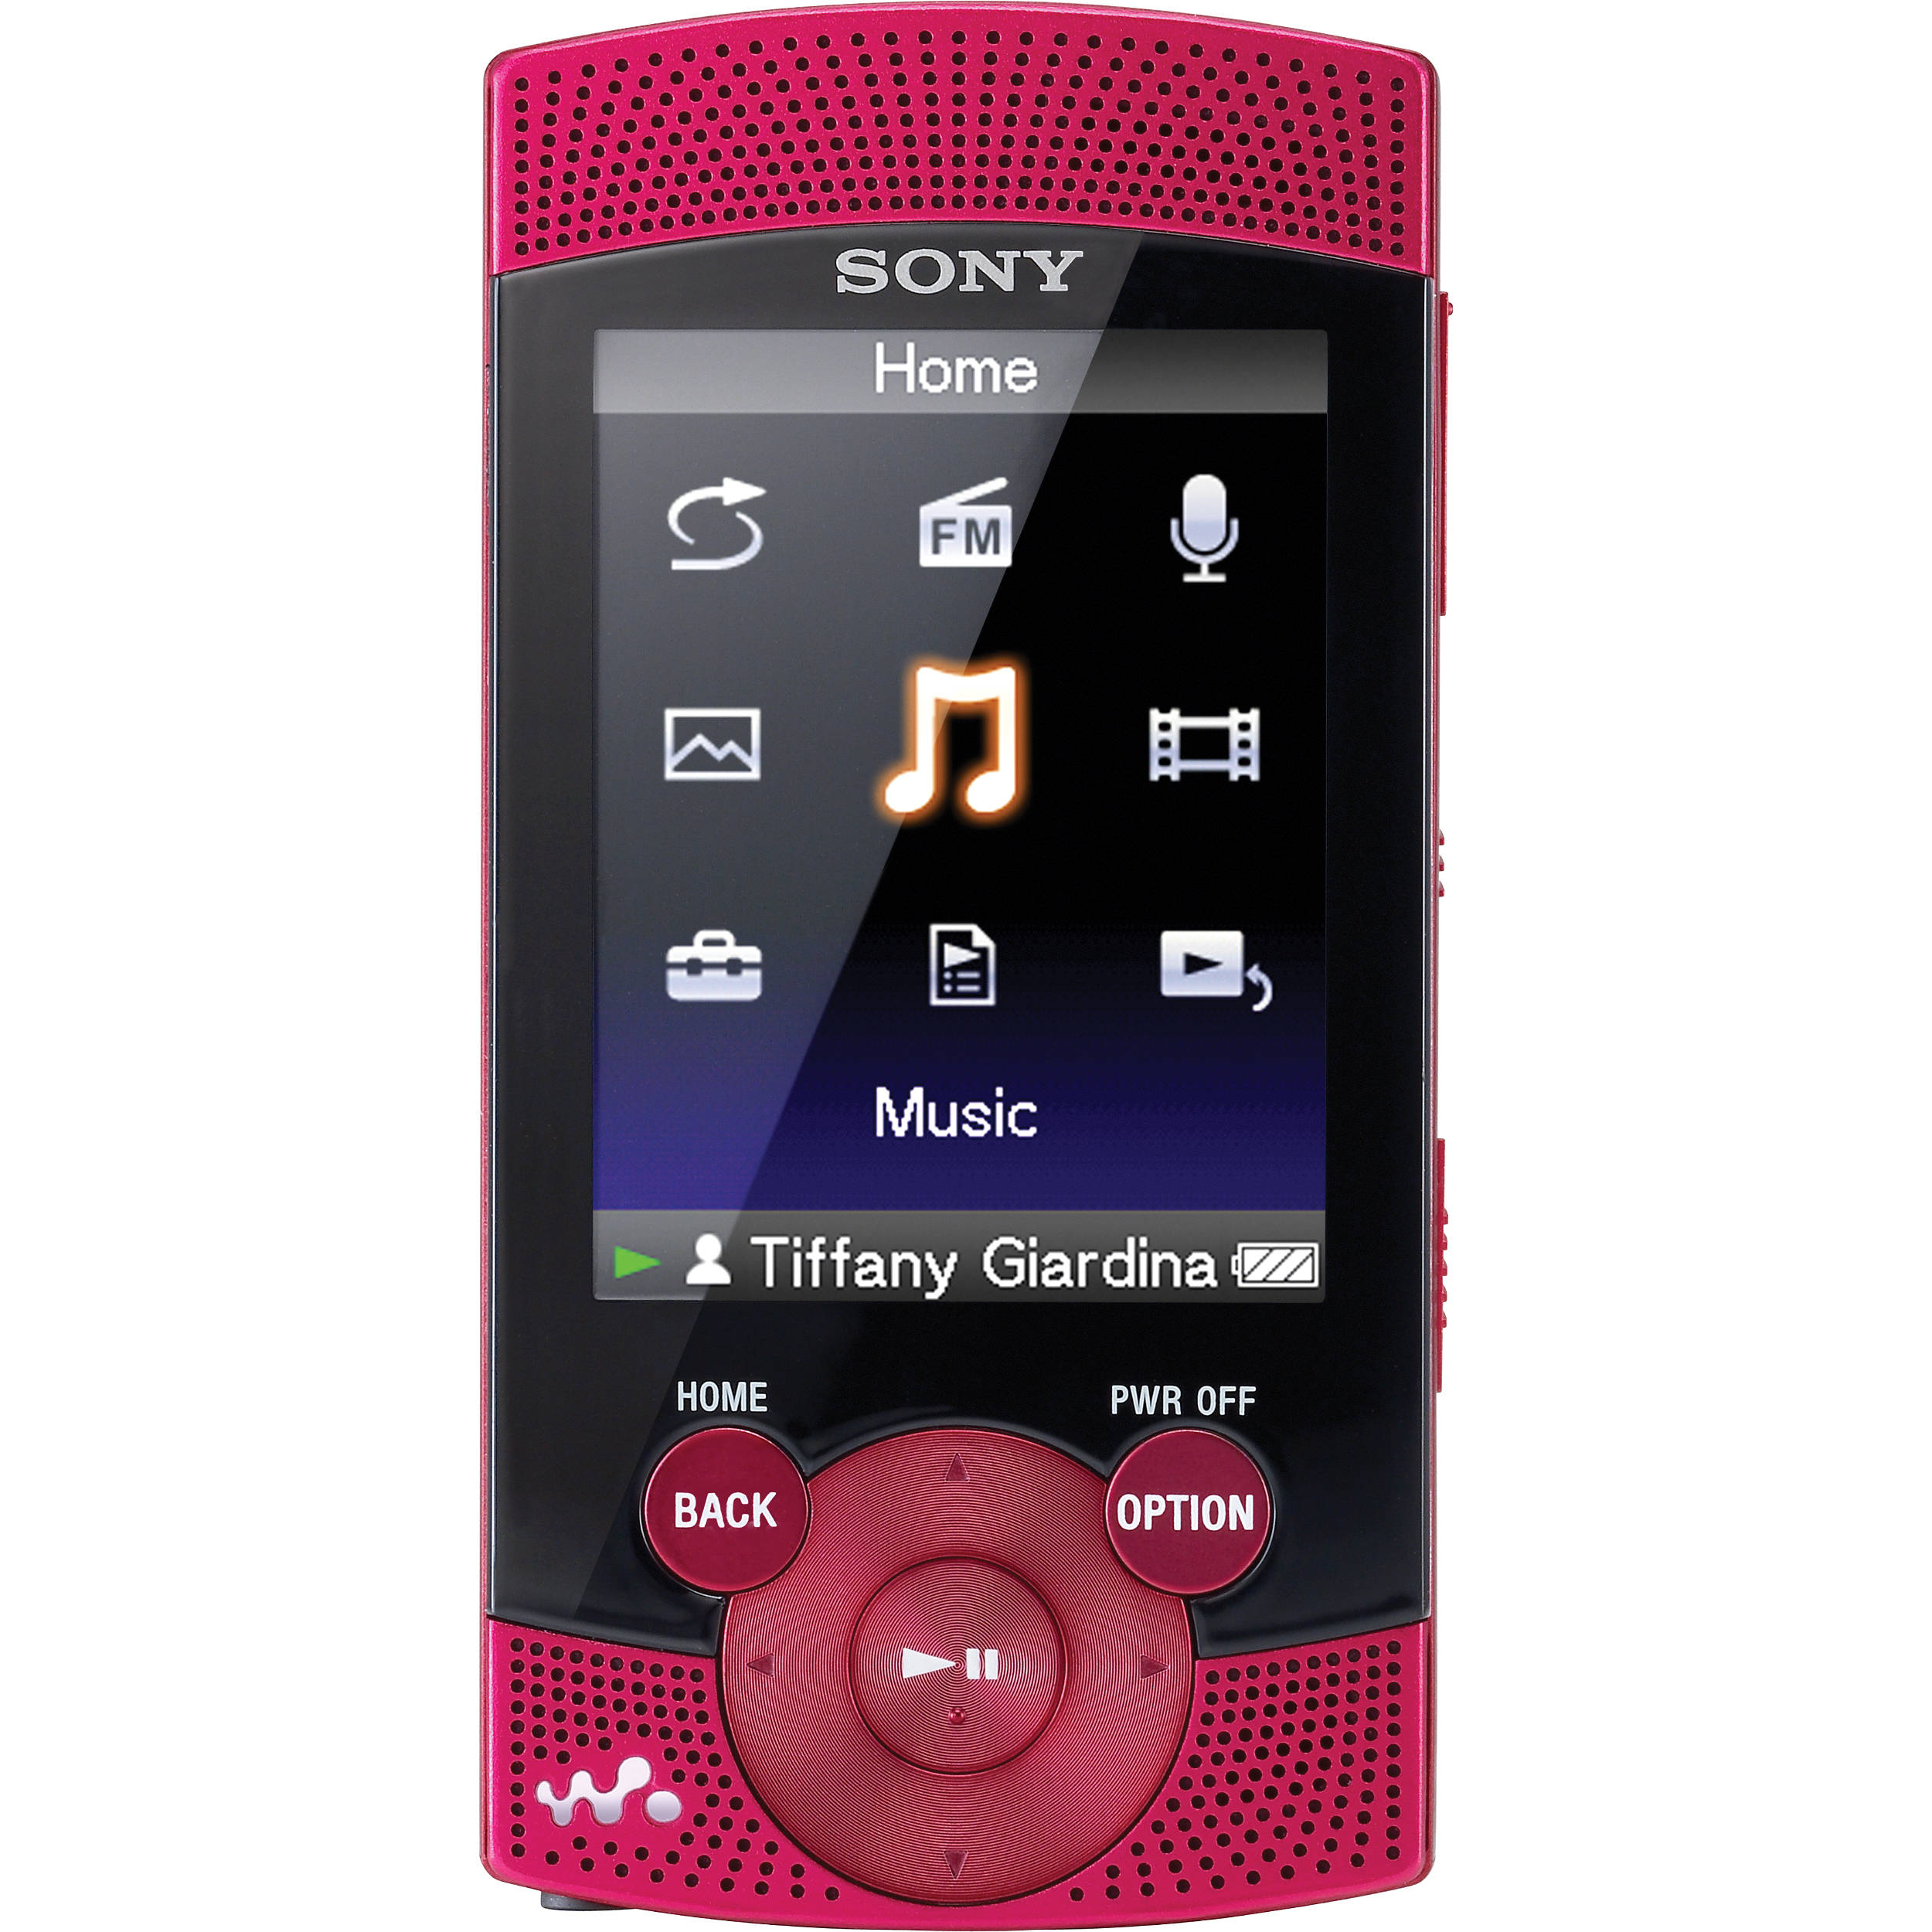 sony 16gb s series walkman video mp3 player red nwz s545red. Black Bedroom Furniture Sets. Home Design Ideas